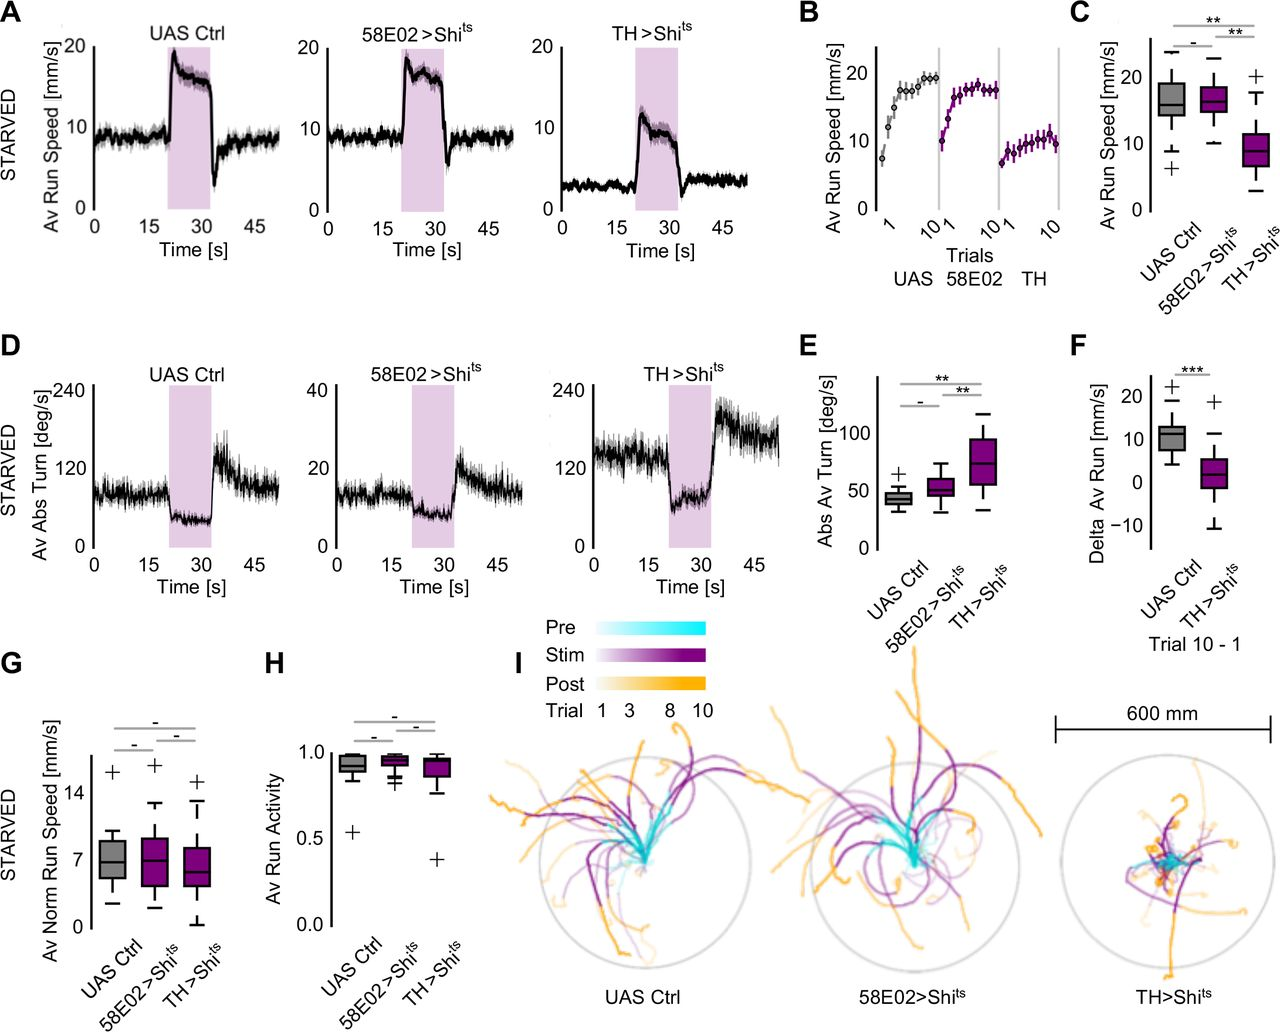 Specific octopaminergic neurons arbitrate between